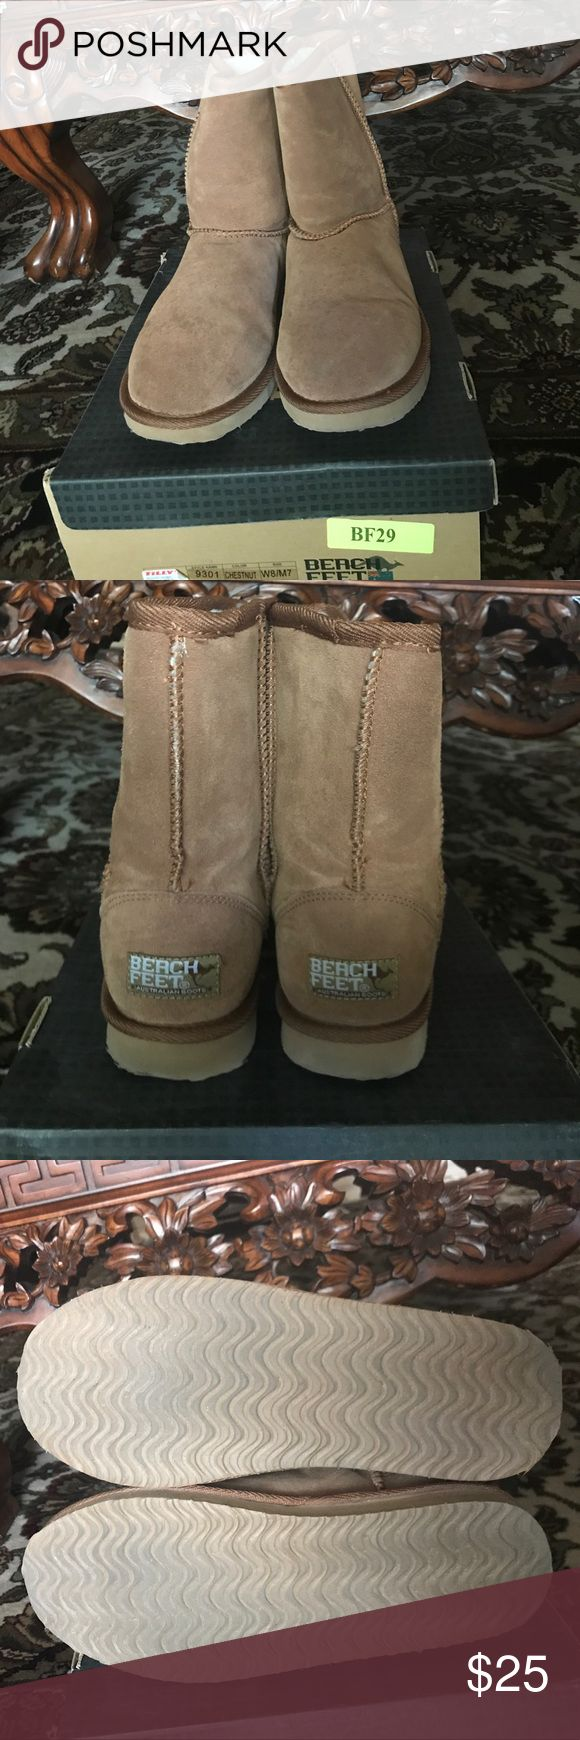 Stay Warm with Winter Boots from Beach Feet. Sz 8. Gender neutral boots in a chestnut (Tan). Gently worn. These were bought at Tully's. Box included. Tilly's Shoes Winter & Rain Boots